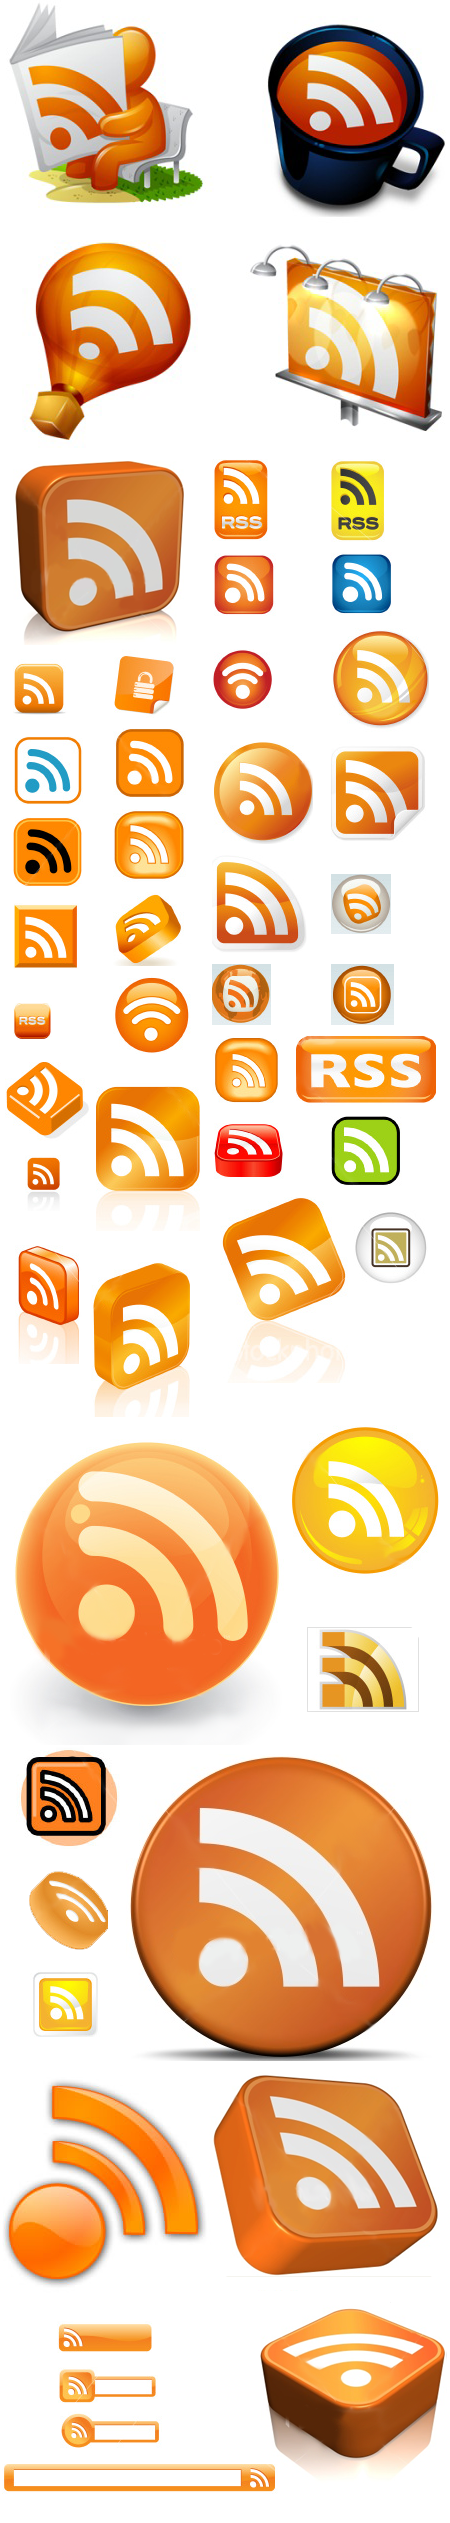 Iconos RSS para tu feed